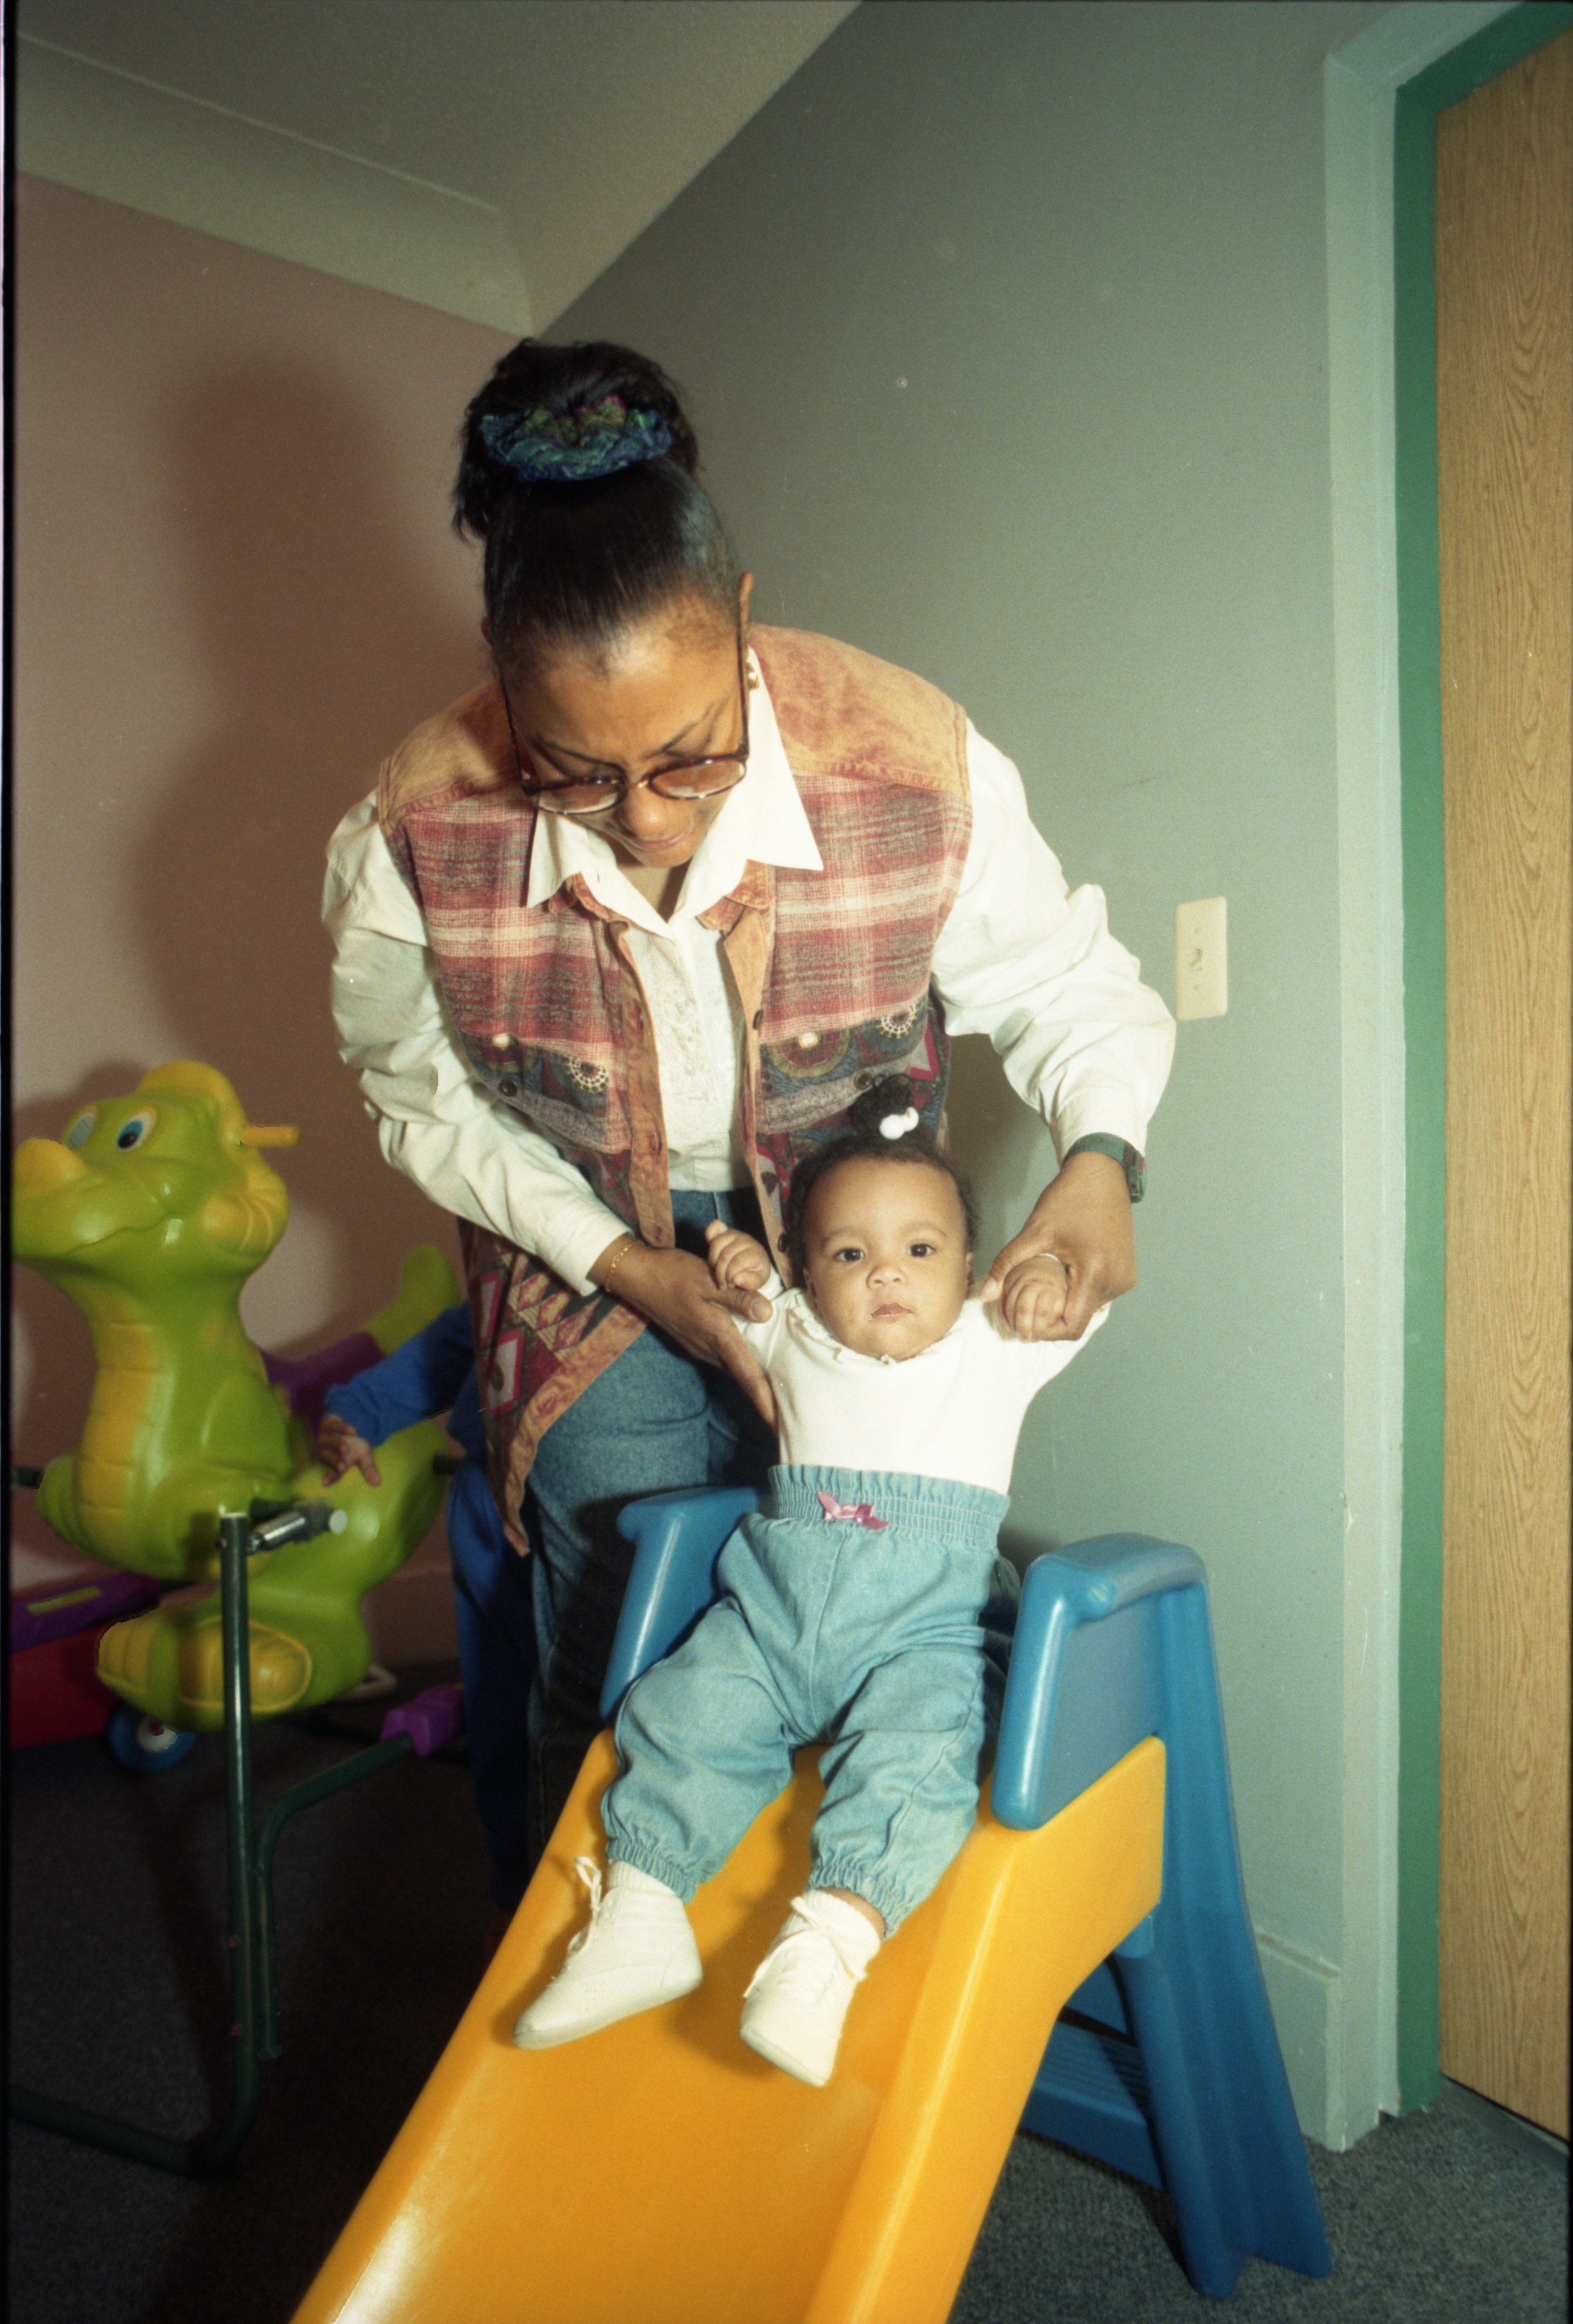 Cheryl Bass-Lee Plays With Annise Summerhill At Noah's Ark Learning Center In Ypsilanti, March 22, 1995 image